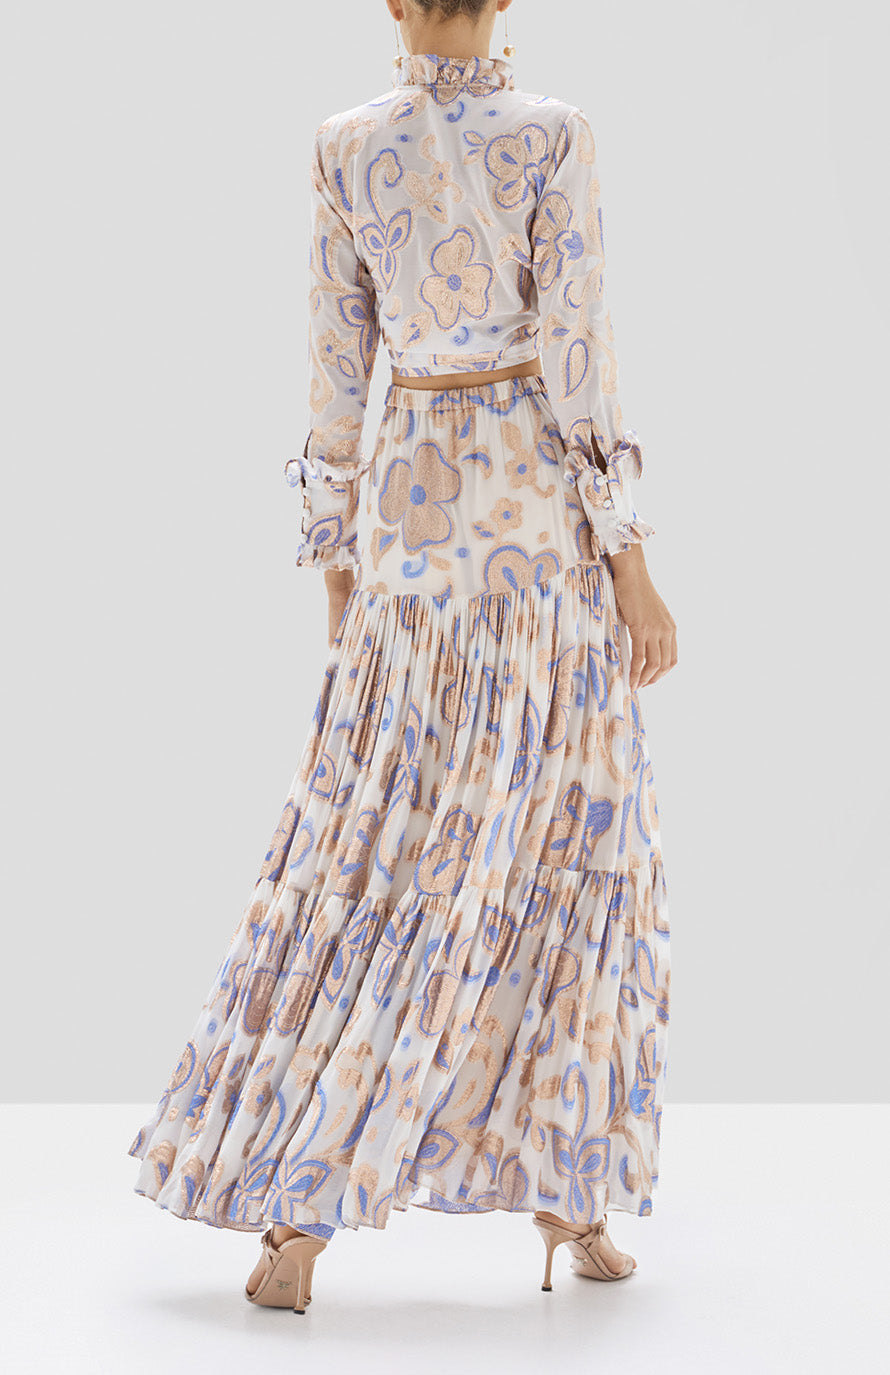 Alexis Marceau Top in Cerulean Garden from the Pre Spring 2020 Collection - Rear View